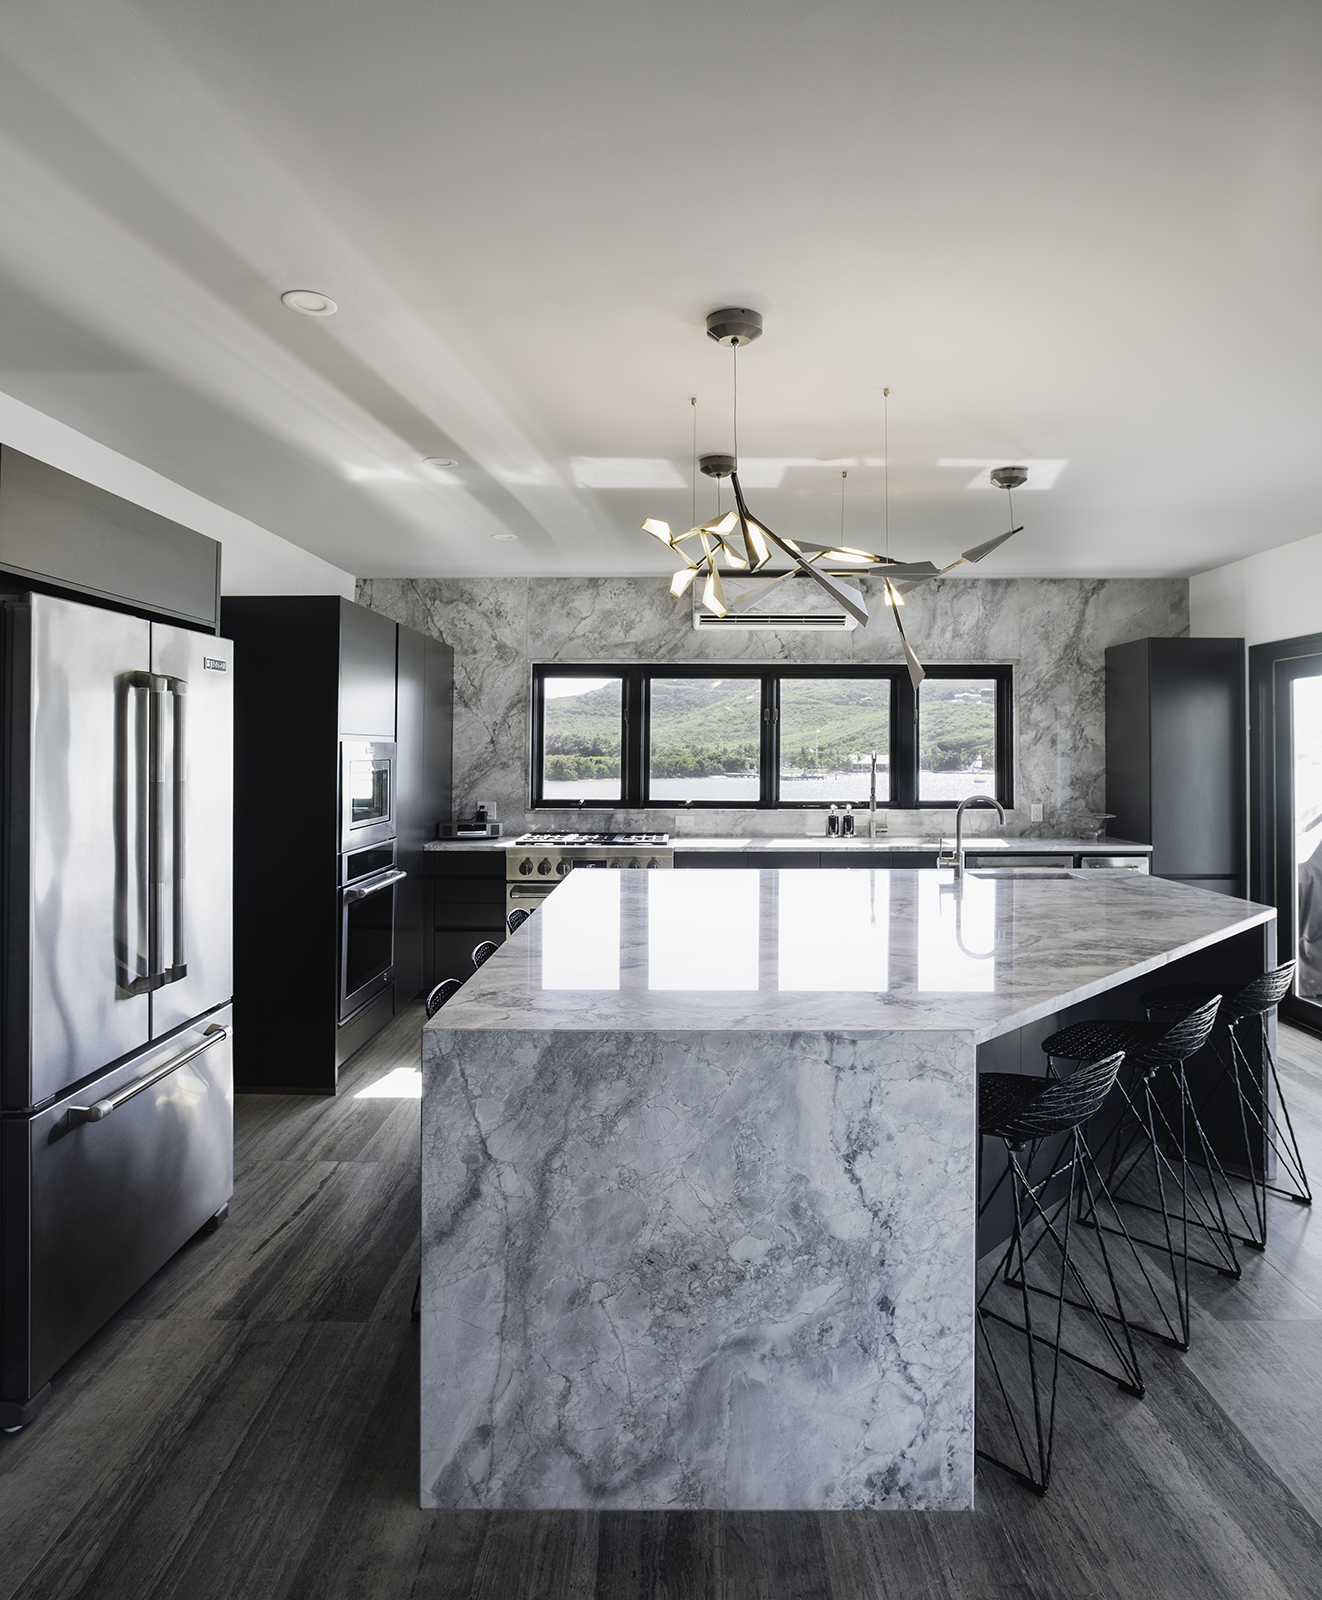 MARINA HOUSE - GREY KITCHEN